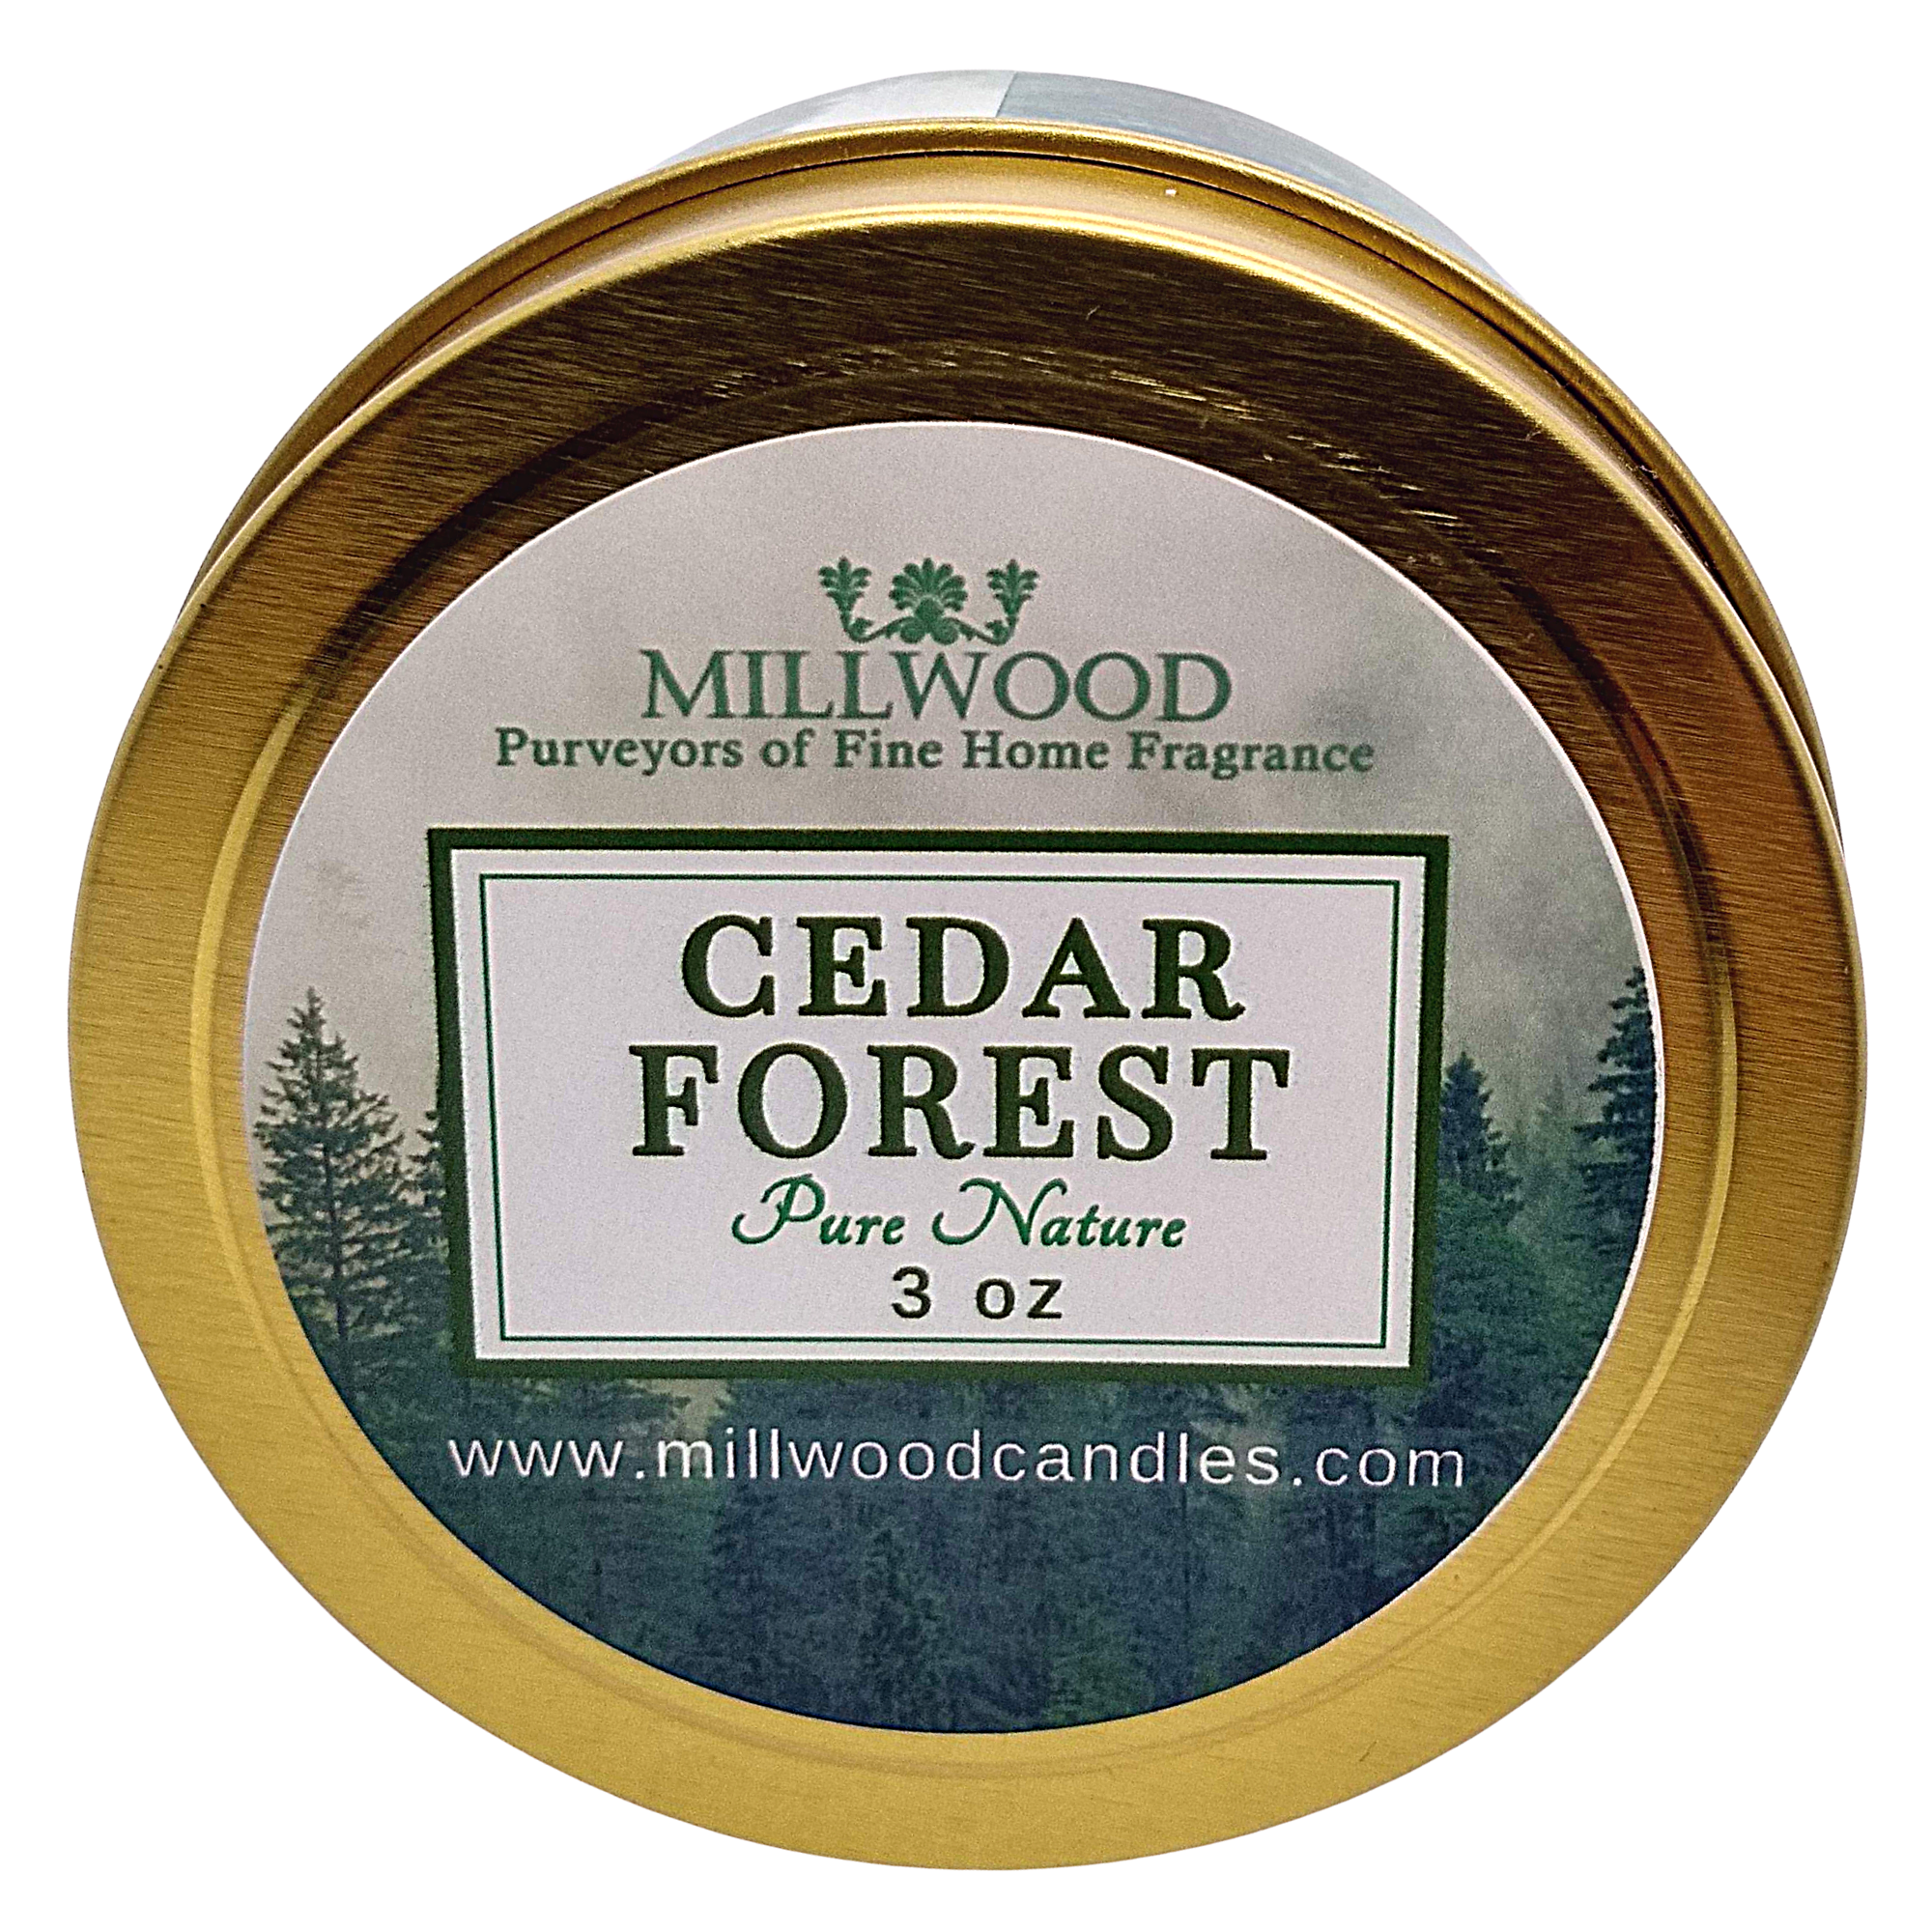 Cedar Soy Candle by Millwood Candles